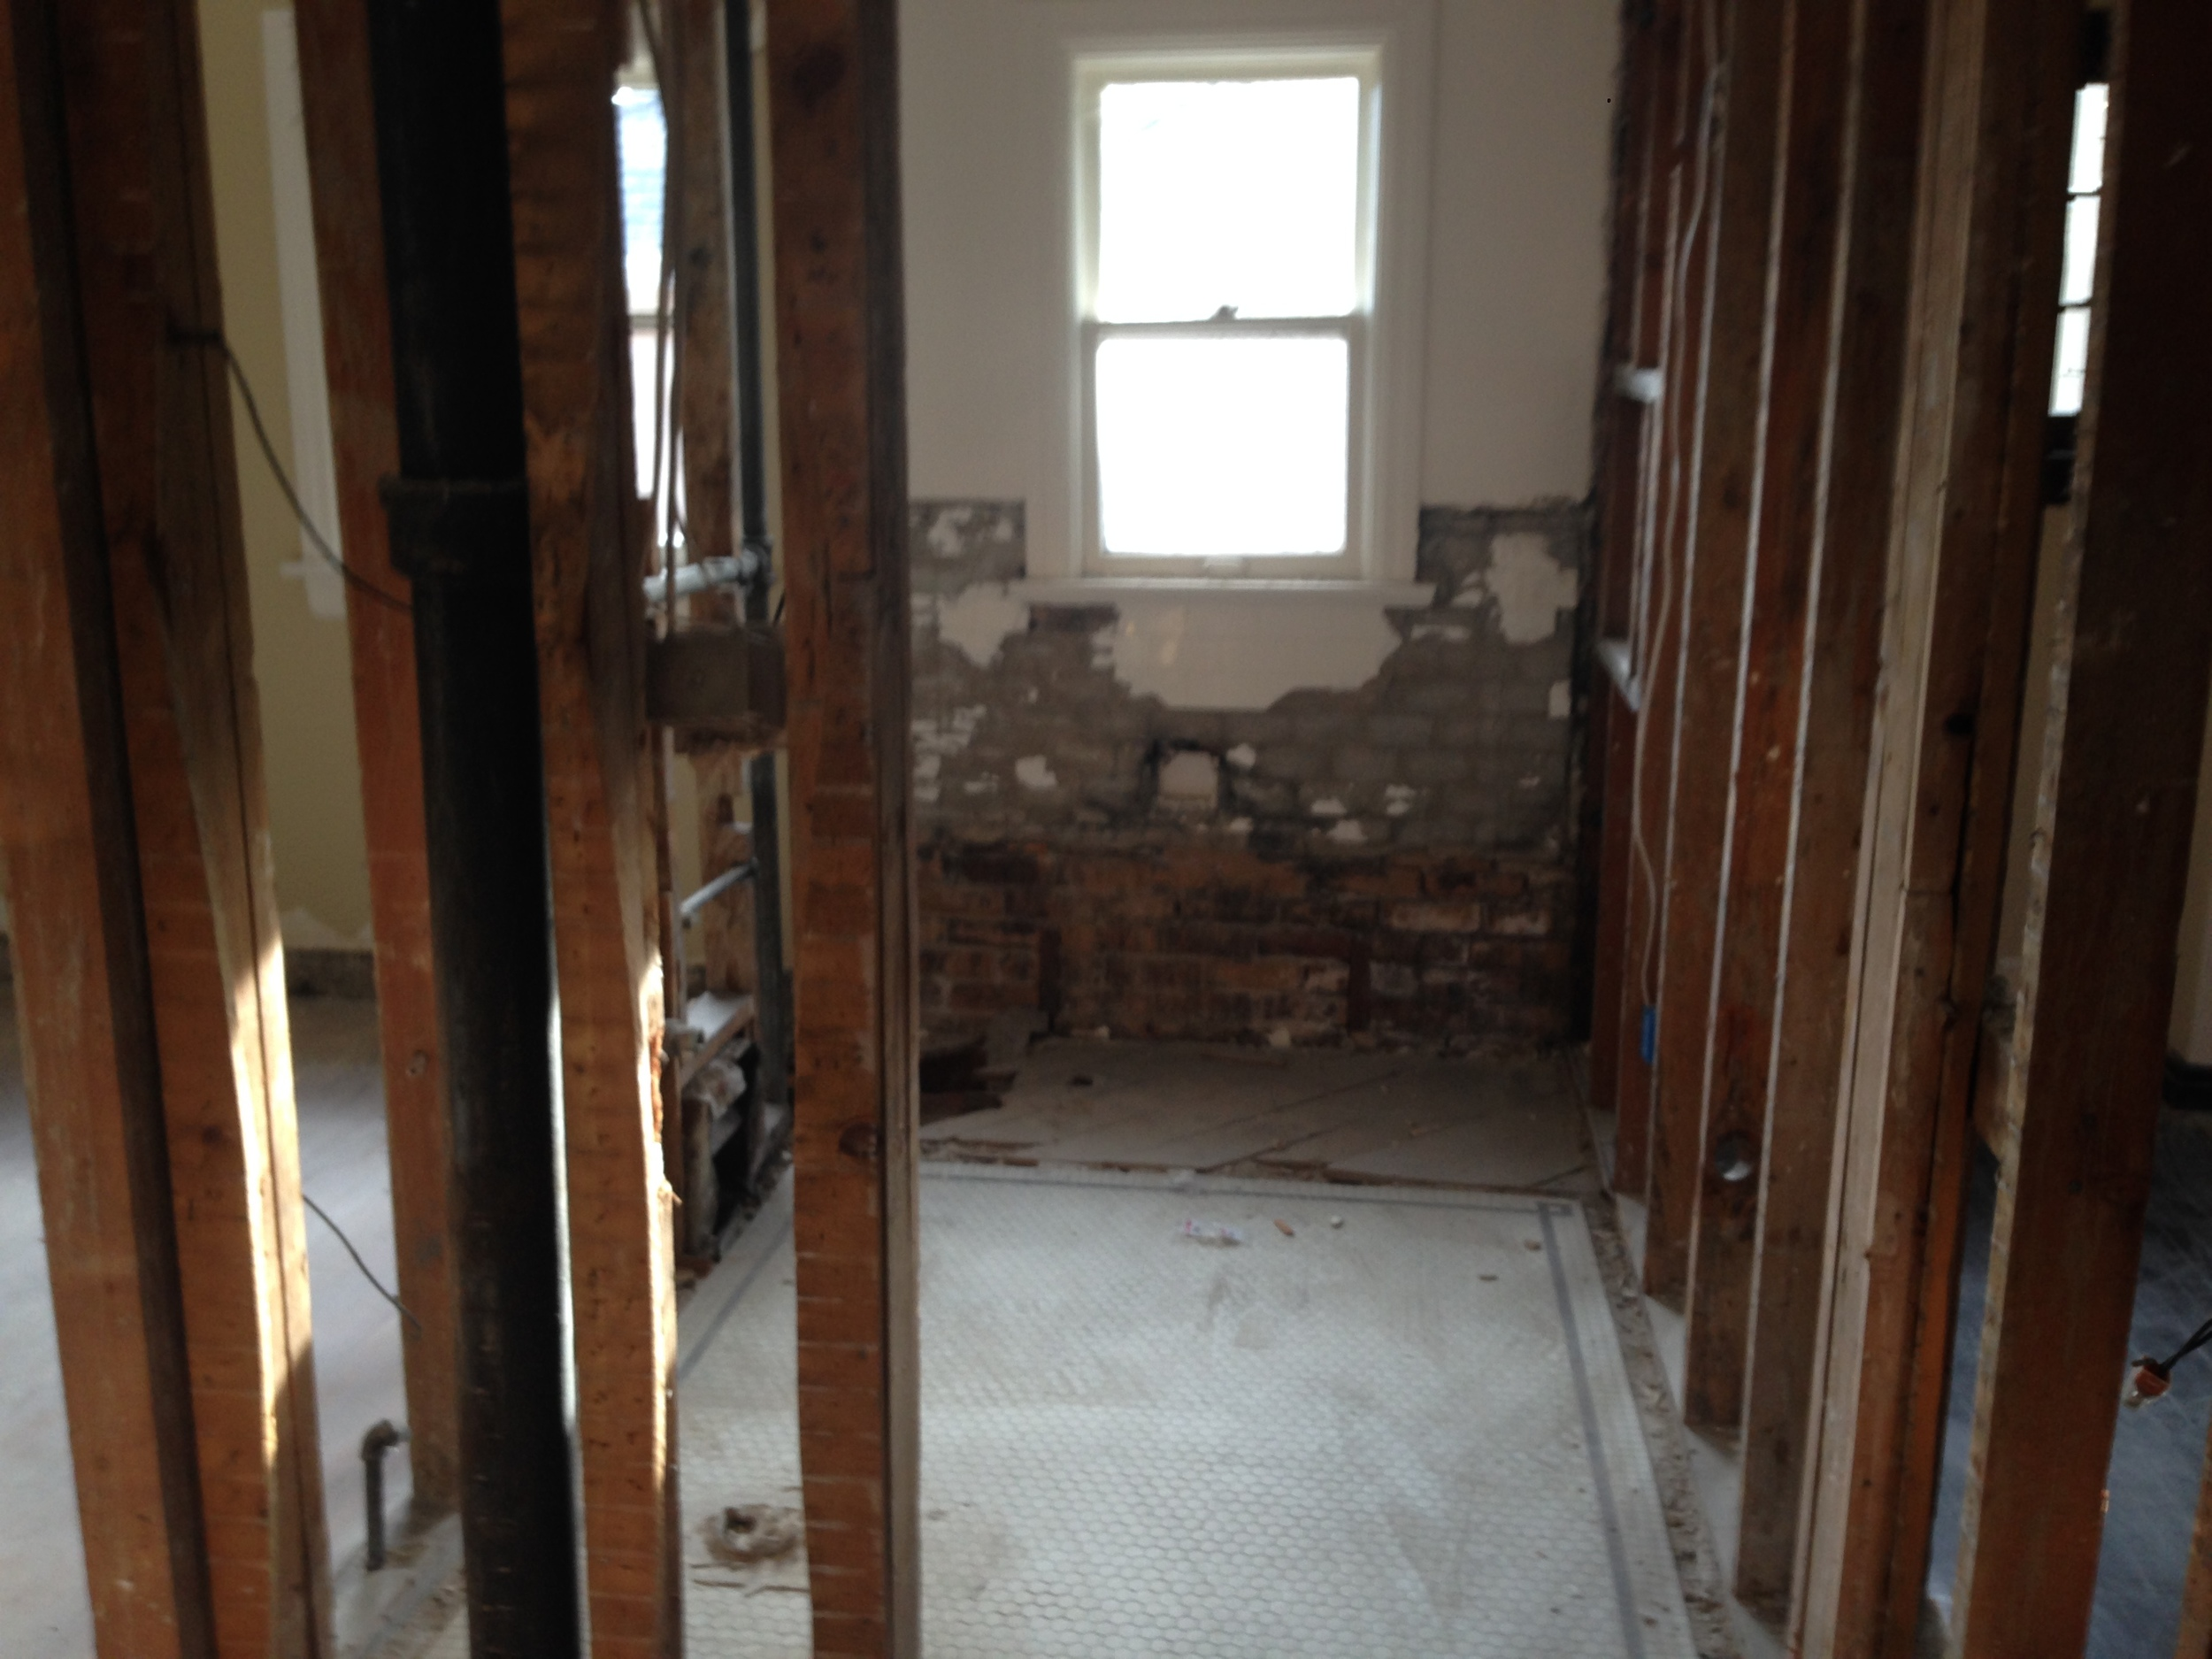 The Upstairs Bathroom- part of it was used for my Master Shower and Water closet, the other part for the Half Bath